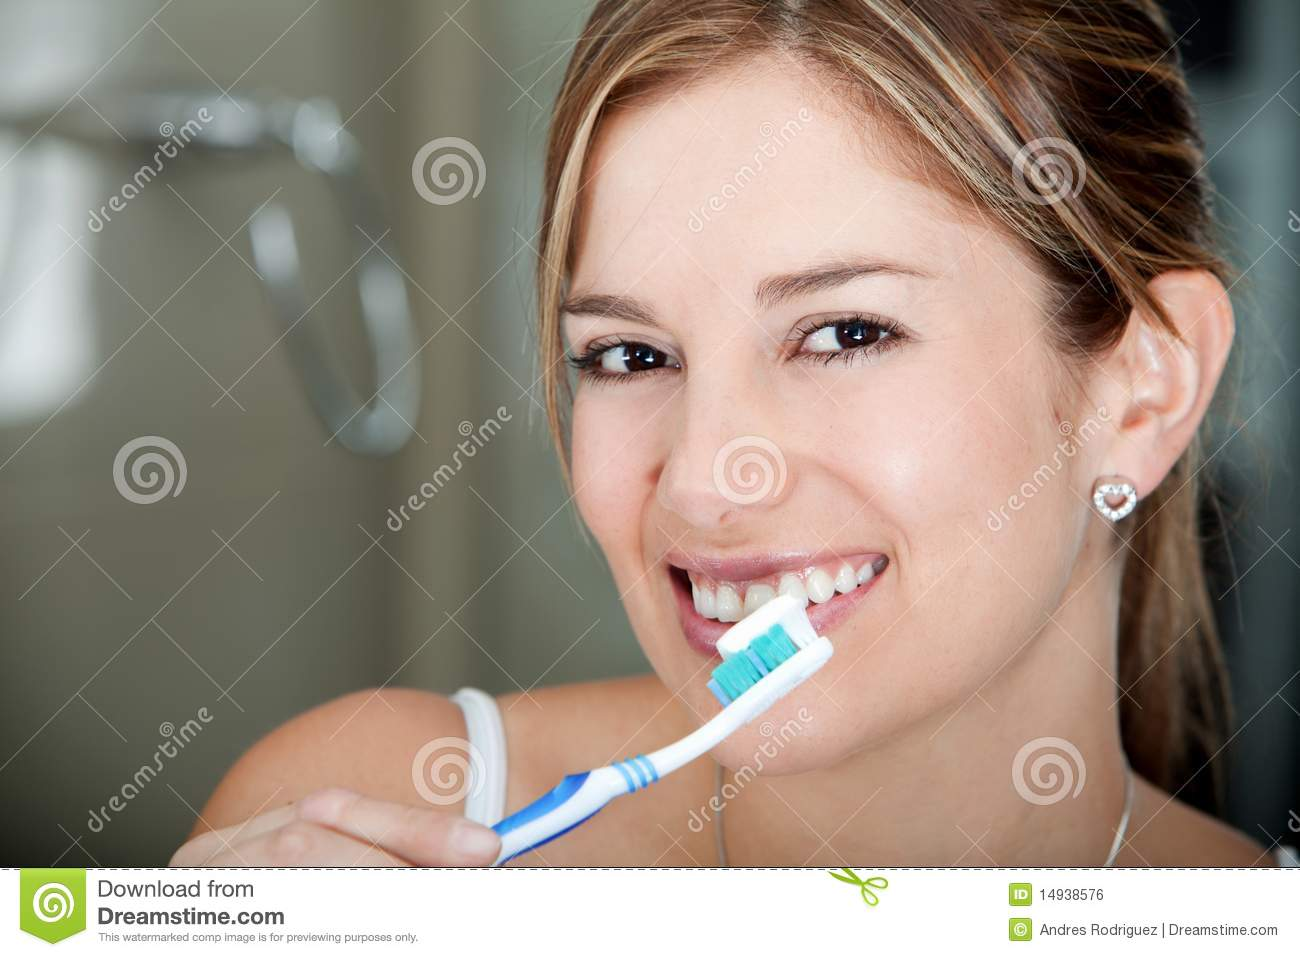 Woman Brushing Her Teeth Royalty Free Stock Image - Image ...